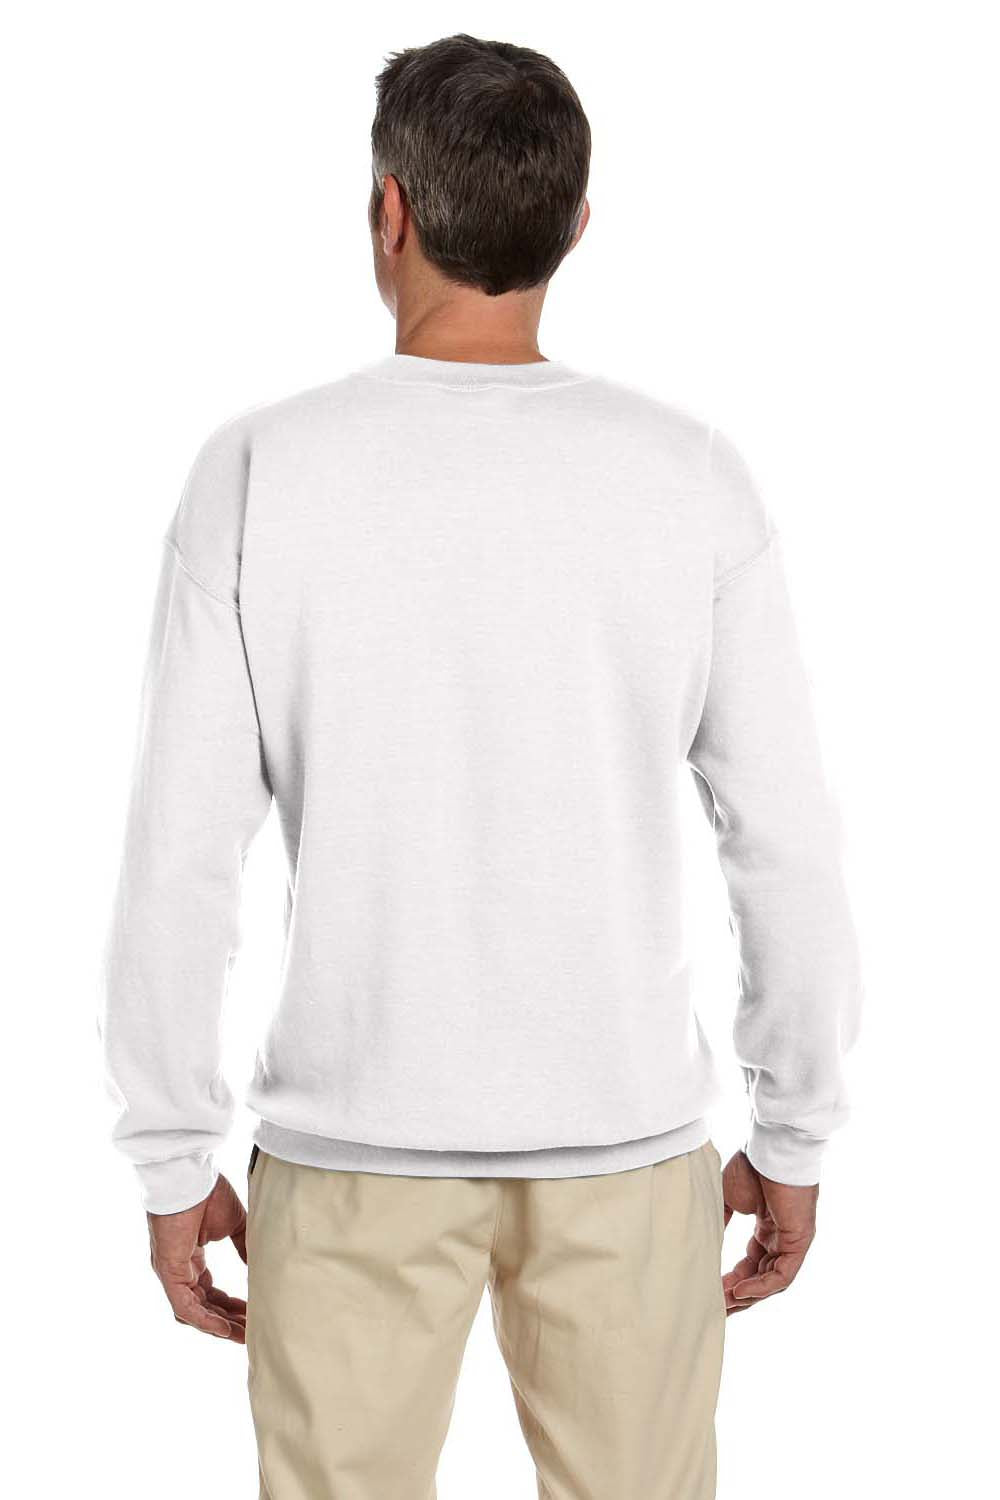 Hanes F260 Mens Ultimate Cotton PrintPro XP Crewneck Sweatshirt White Back